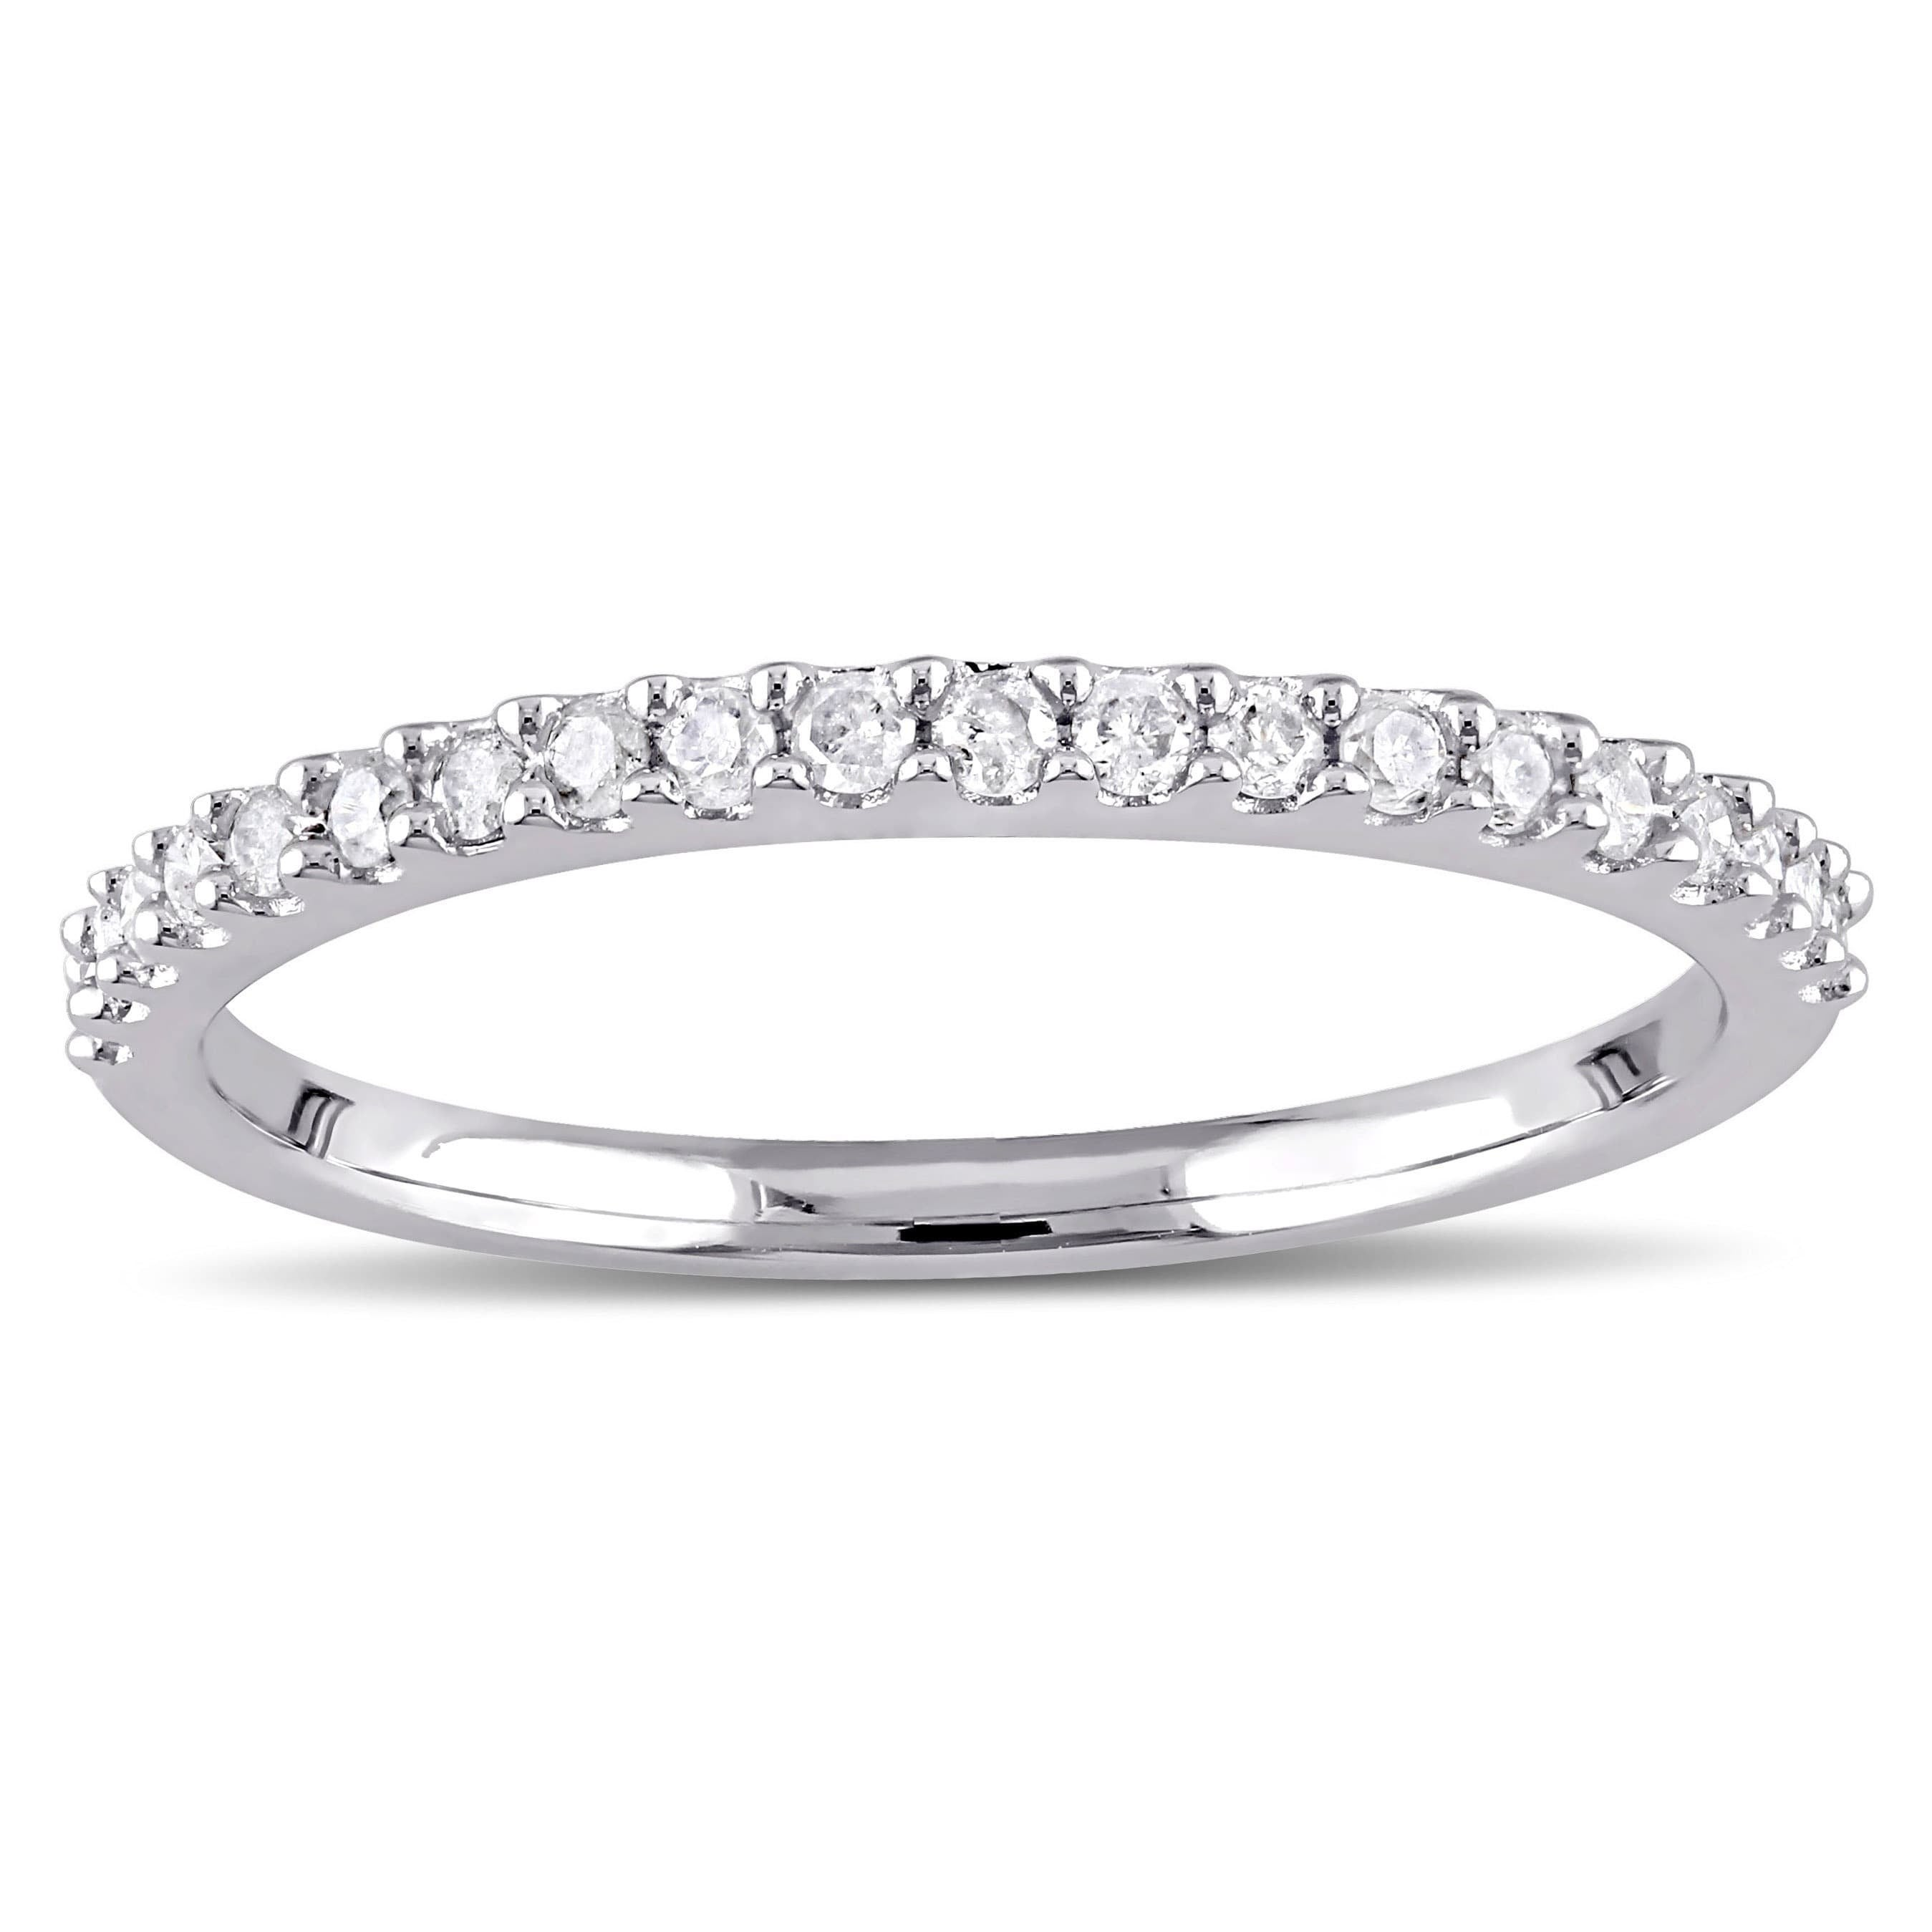 Jewelry & Watches Latest Collection Of Womens 0.15 Ct Classic Eternity Wedding Band Ring White Gold Plated Size 6-9 Engagement & Wedding